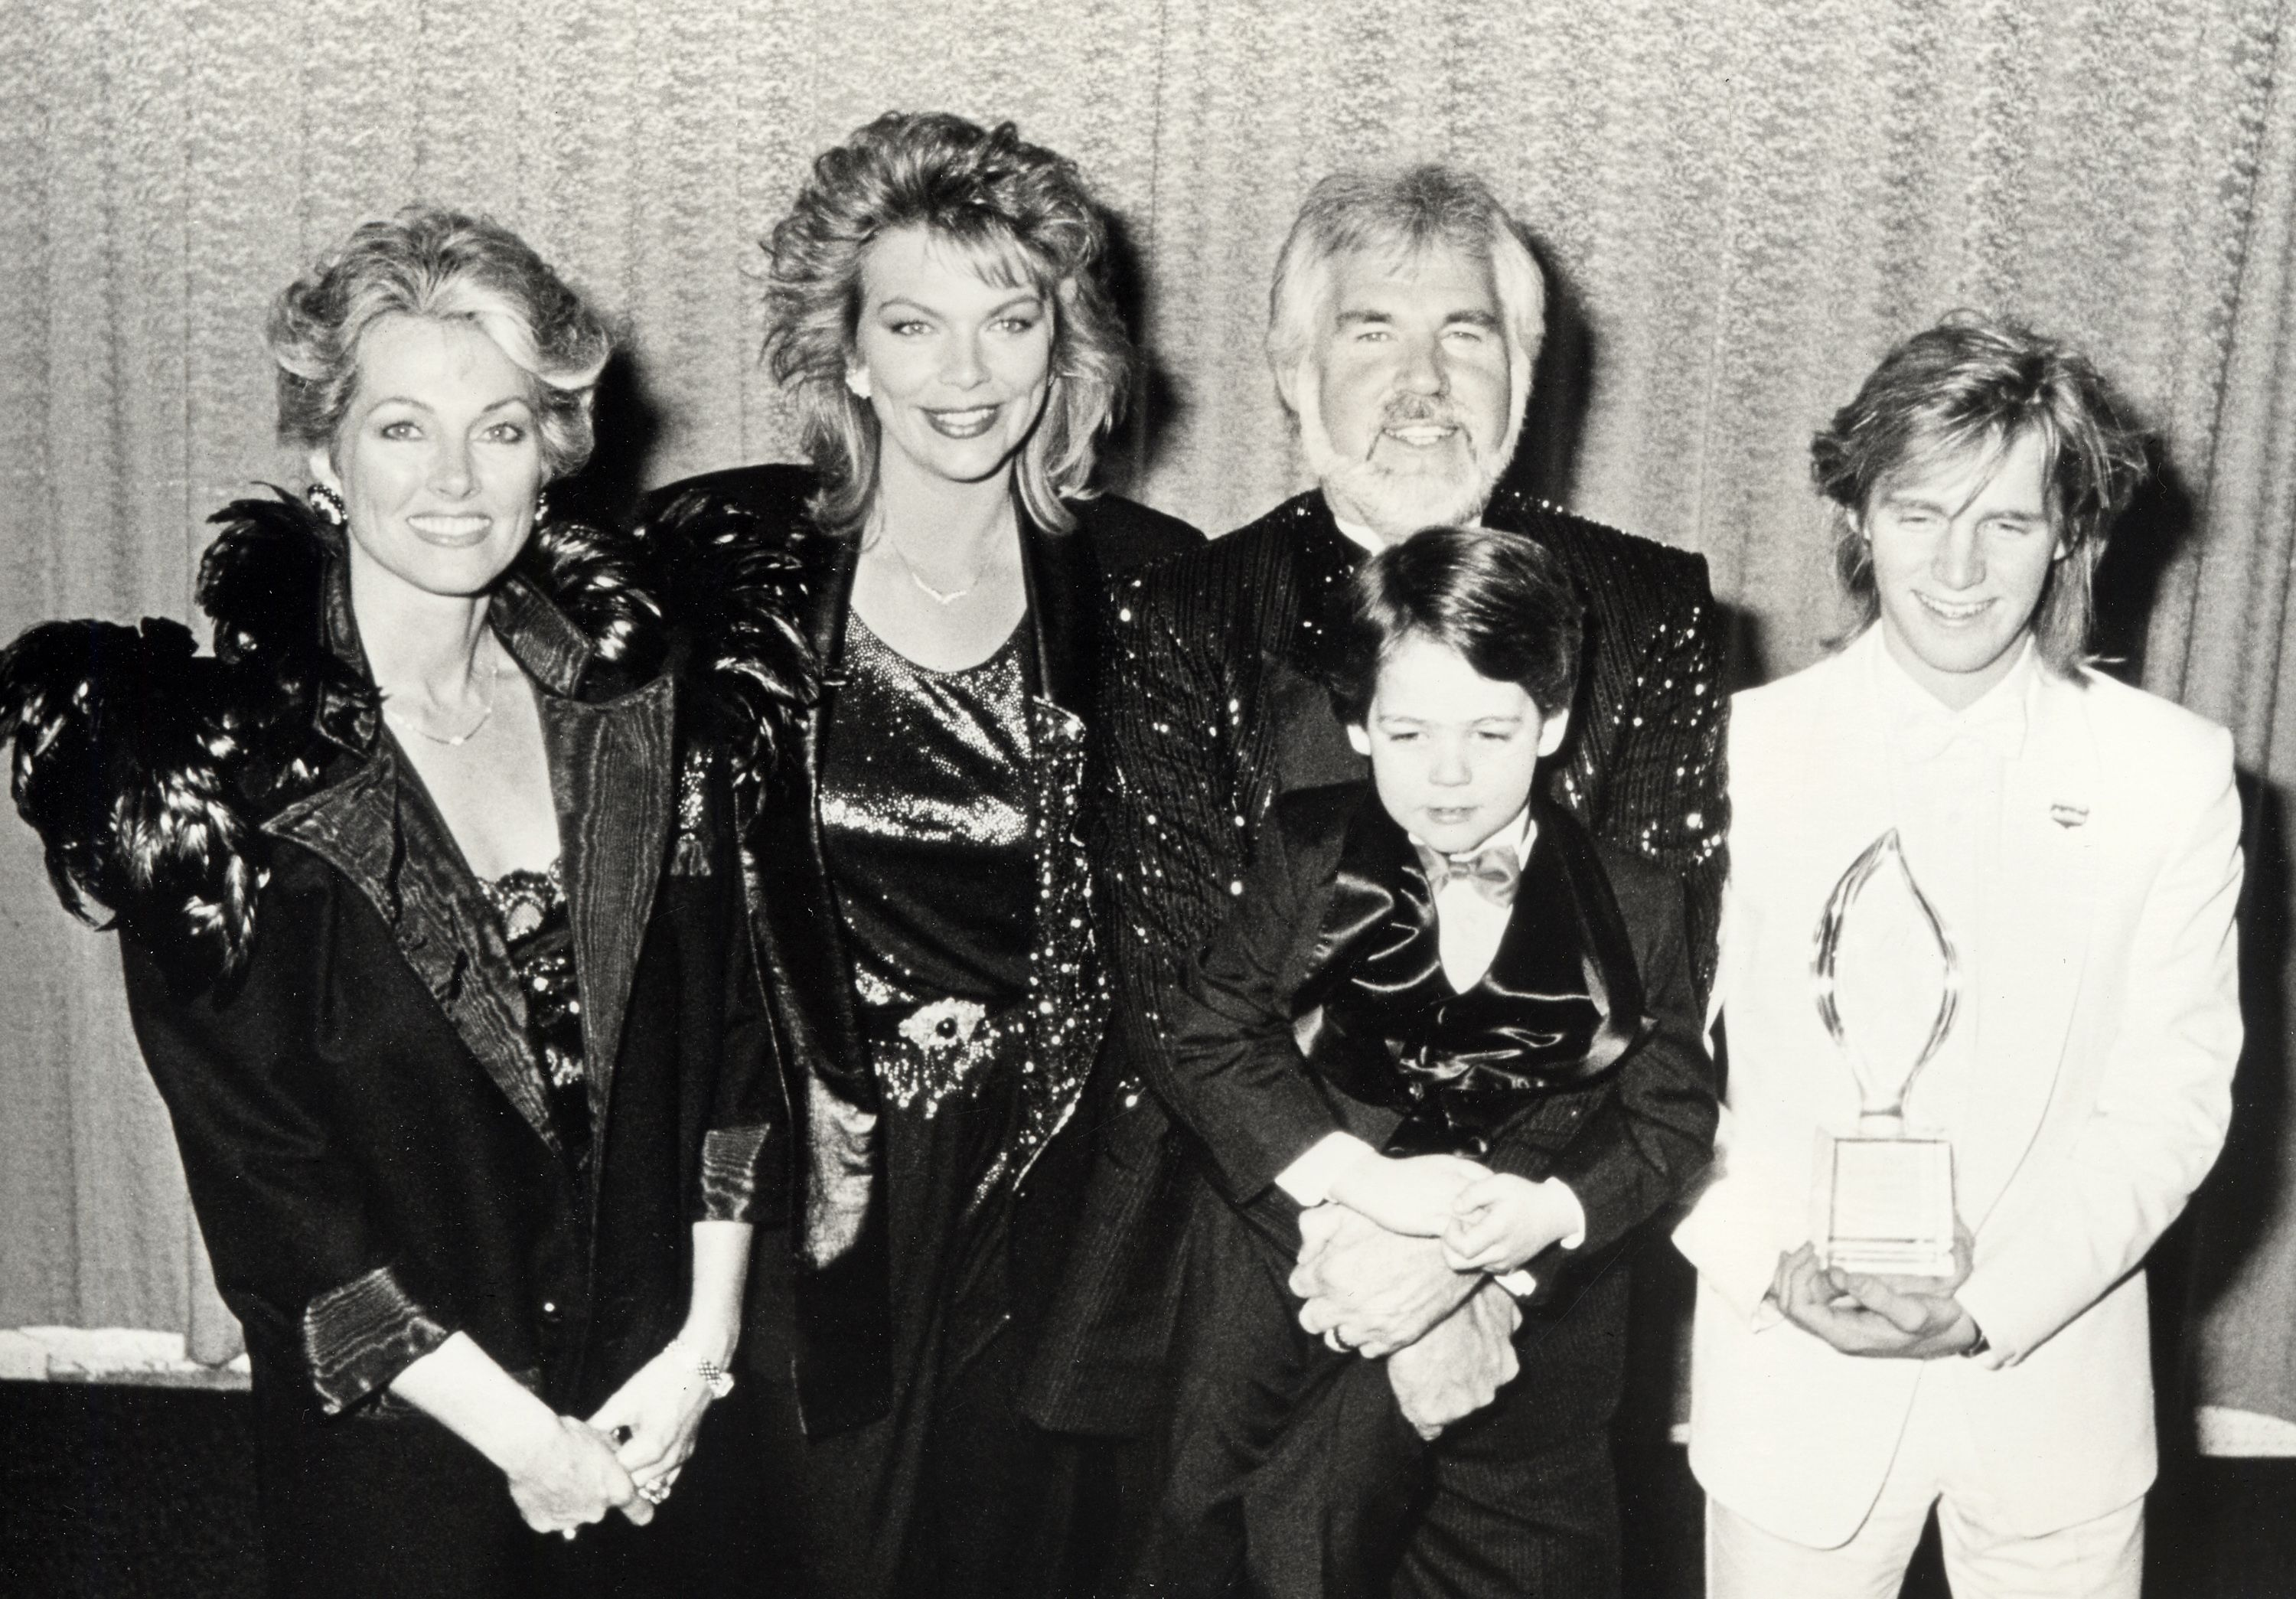 Kenny Rogers, wife Marianne Gordon, daughter Carol Rogers and sons Kenny Rogers Jr. and Christopher Rogers at the 12th Annual People's Choice Awards in 1986 | Source: Getty Images